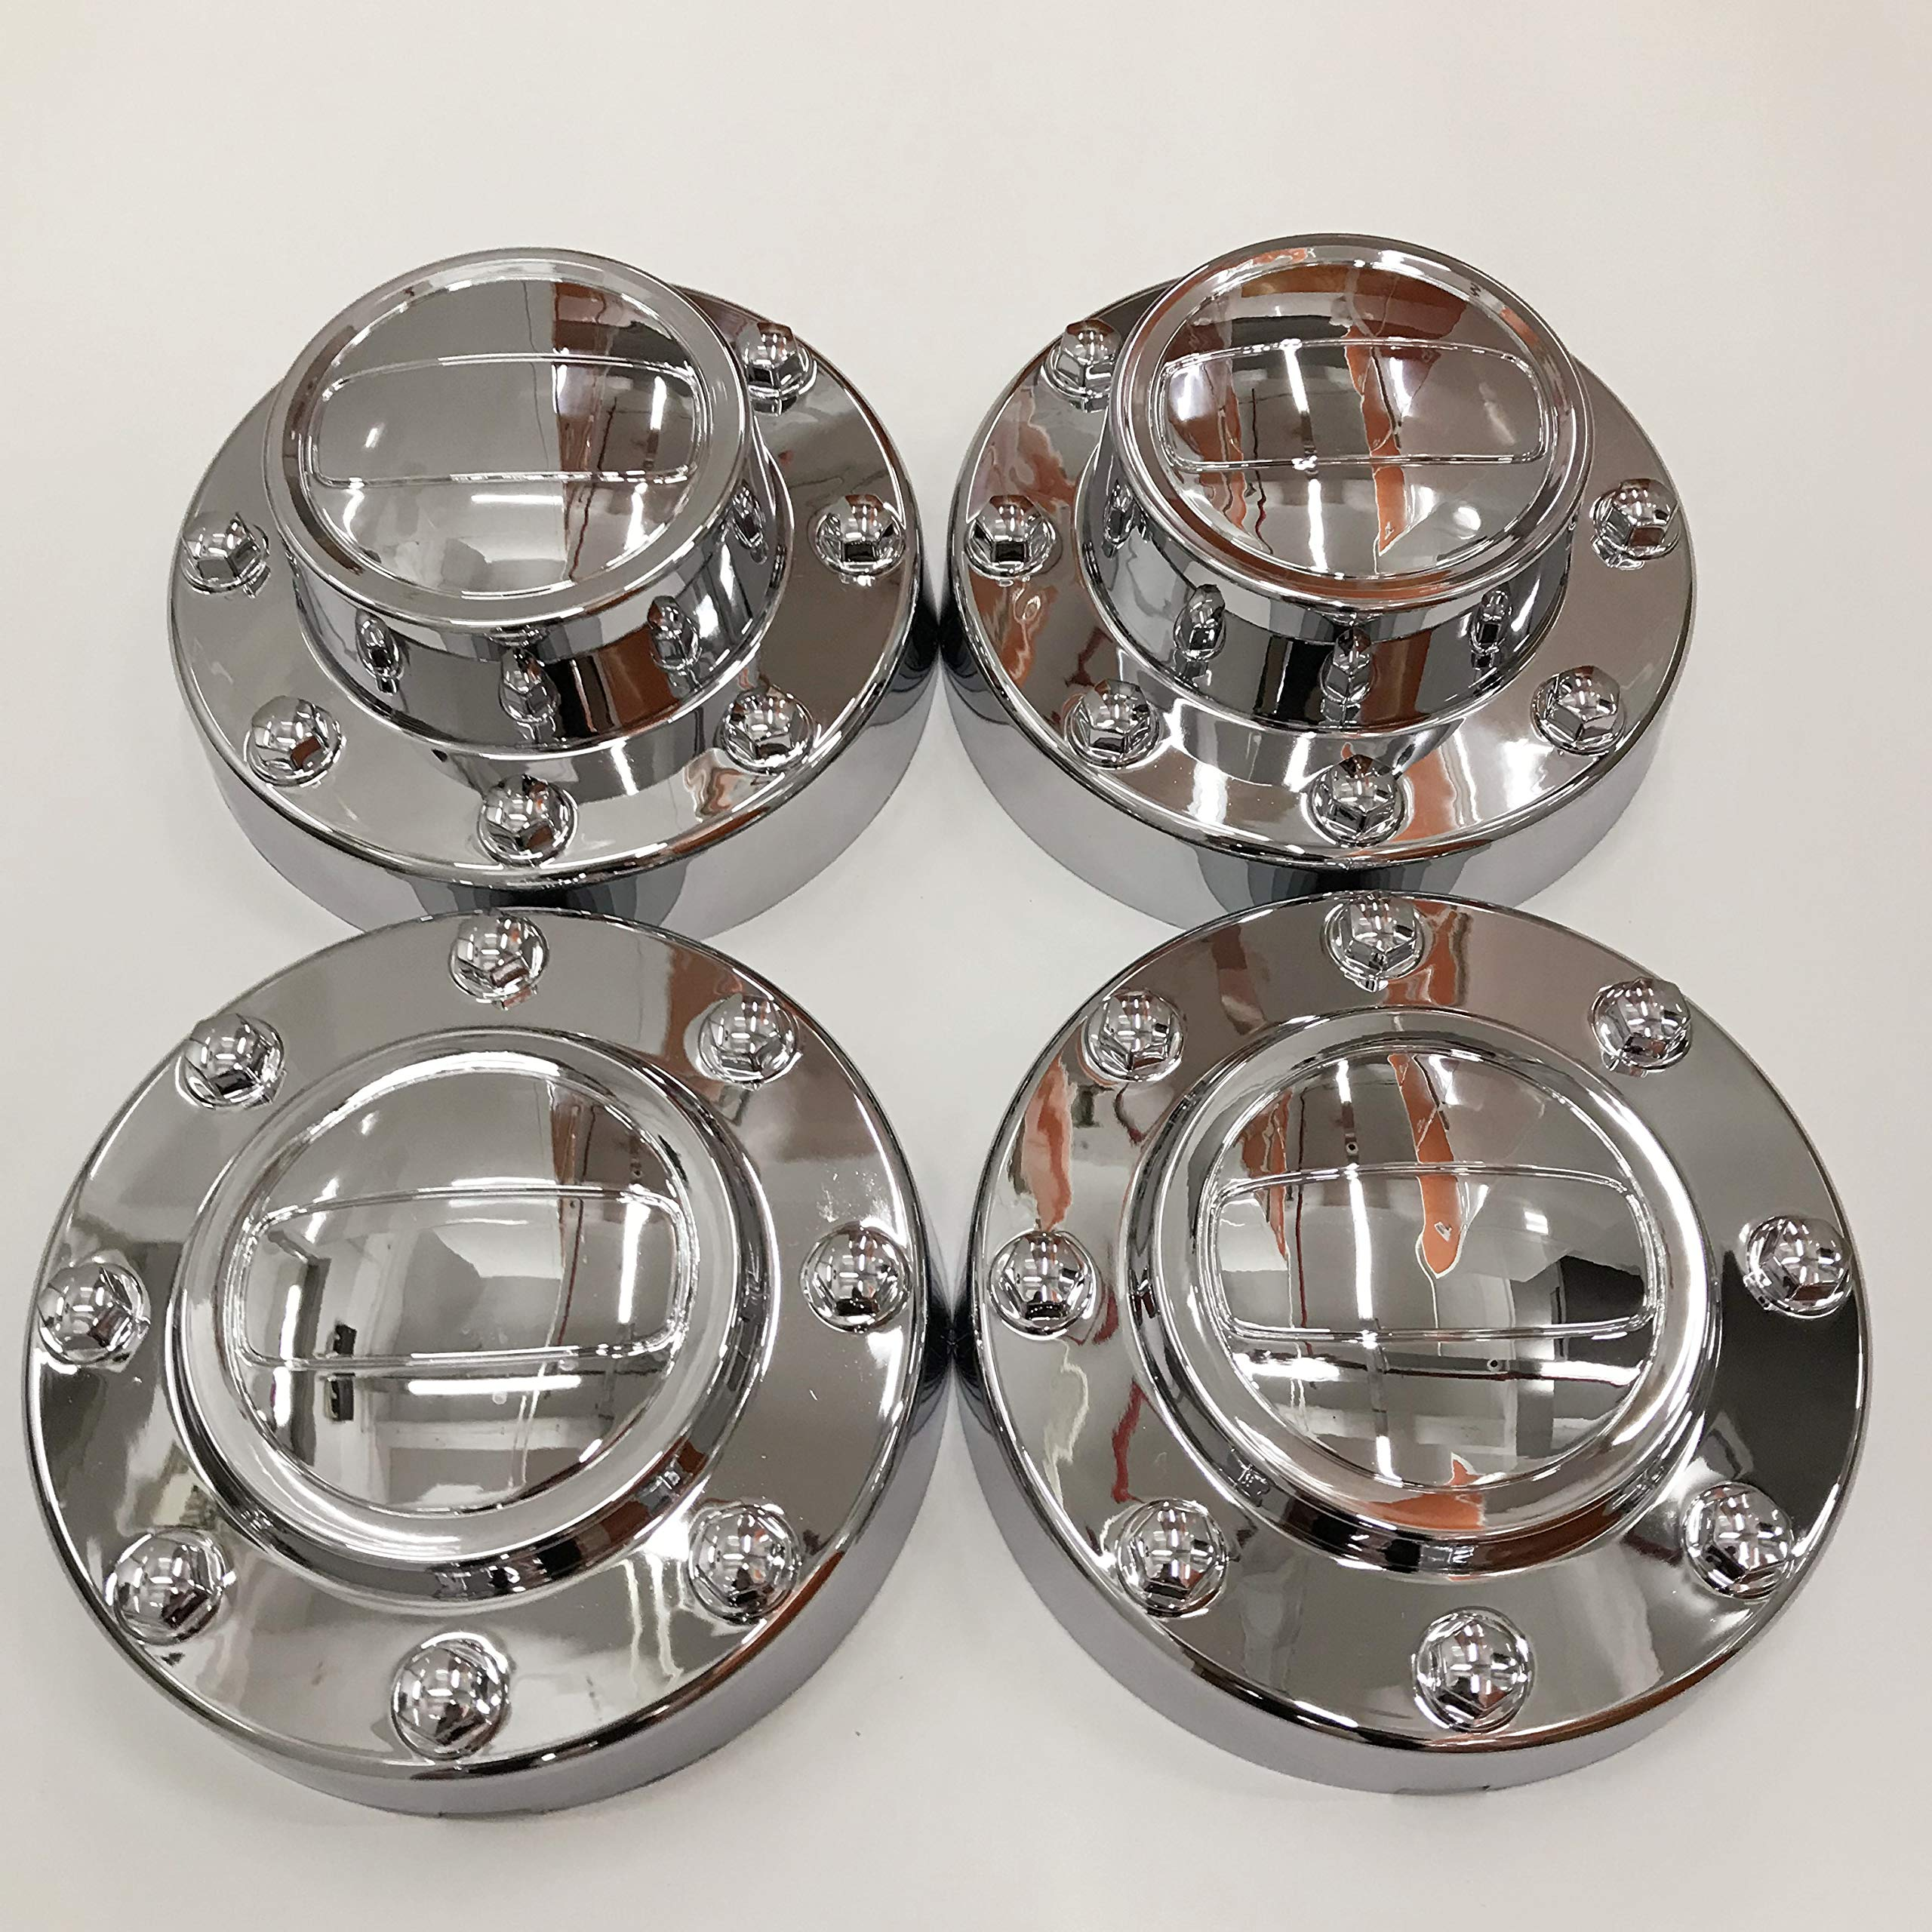 PPCovers New Replacement for 2011-2016 Ram 3500 Chrome Wheel Hub Center Caps Set 1-TON Dually DRW Alcoa Alloy Wheel 2 Front and 2 Rear by PPCovers